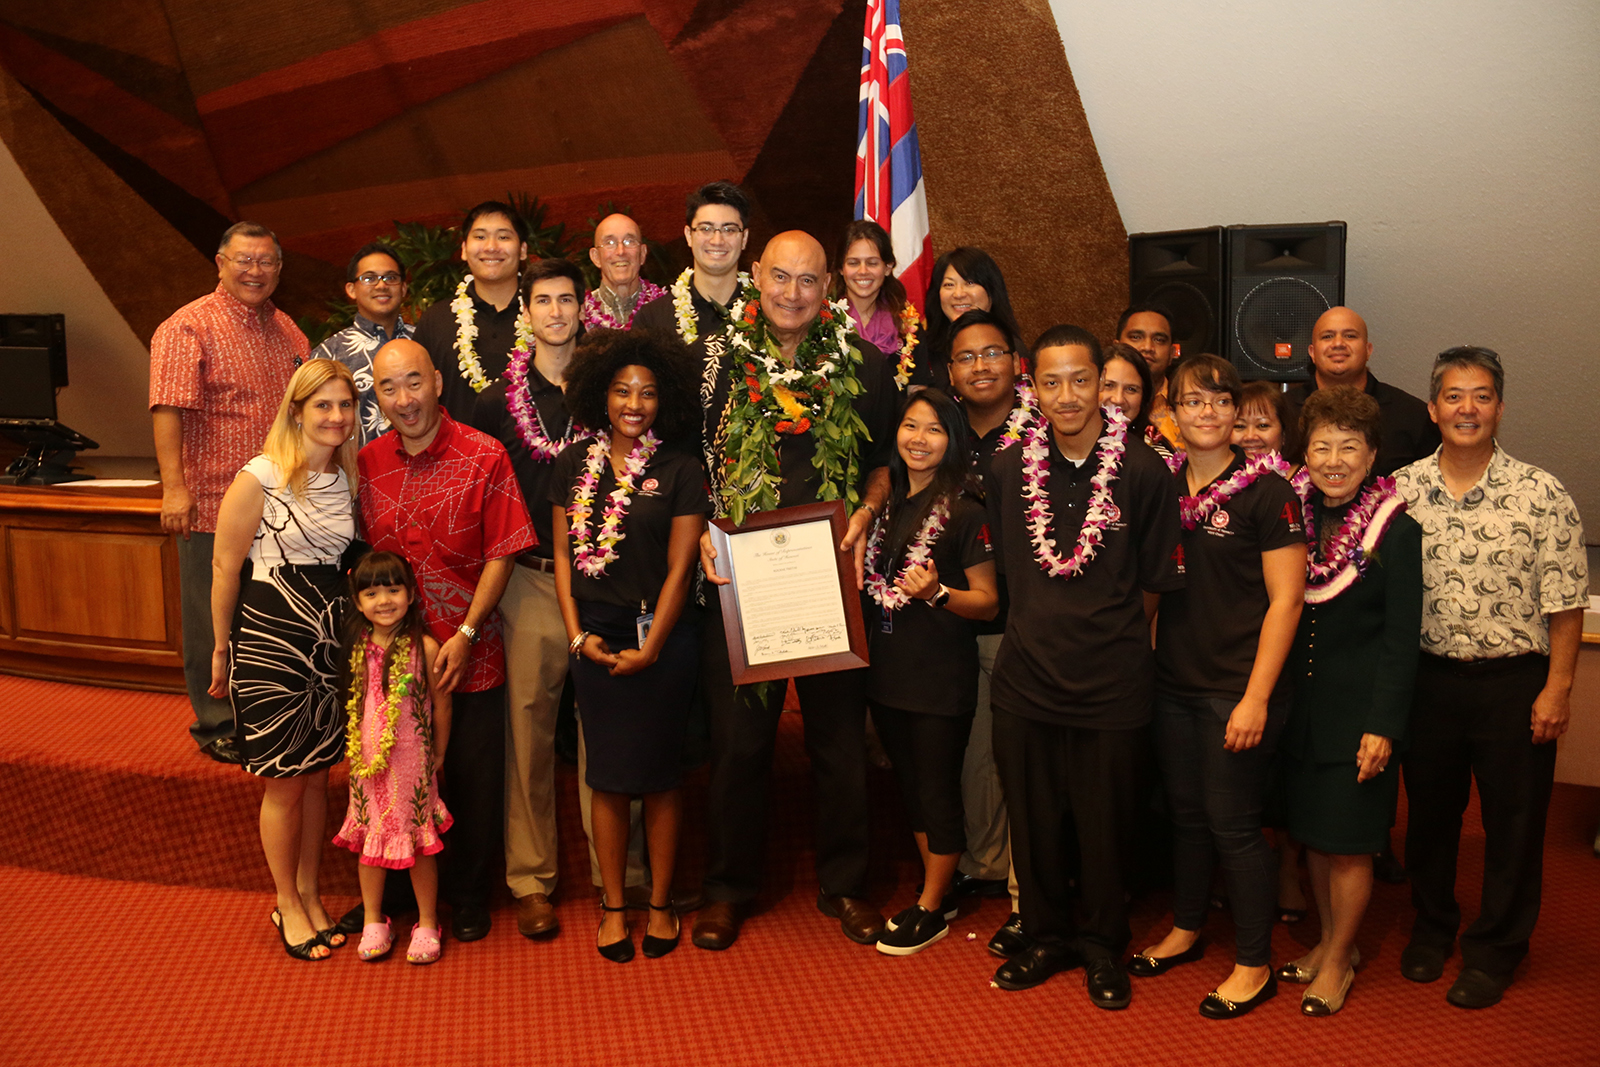 Former Chancellor Rockne Freitas poses with his House Resolution and members of the UH West Oahu staff and legislative interns.